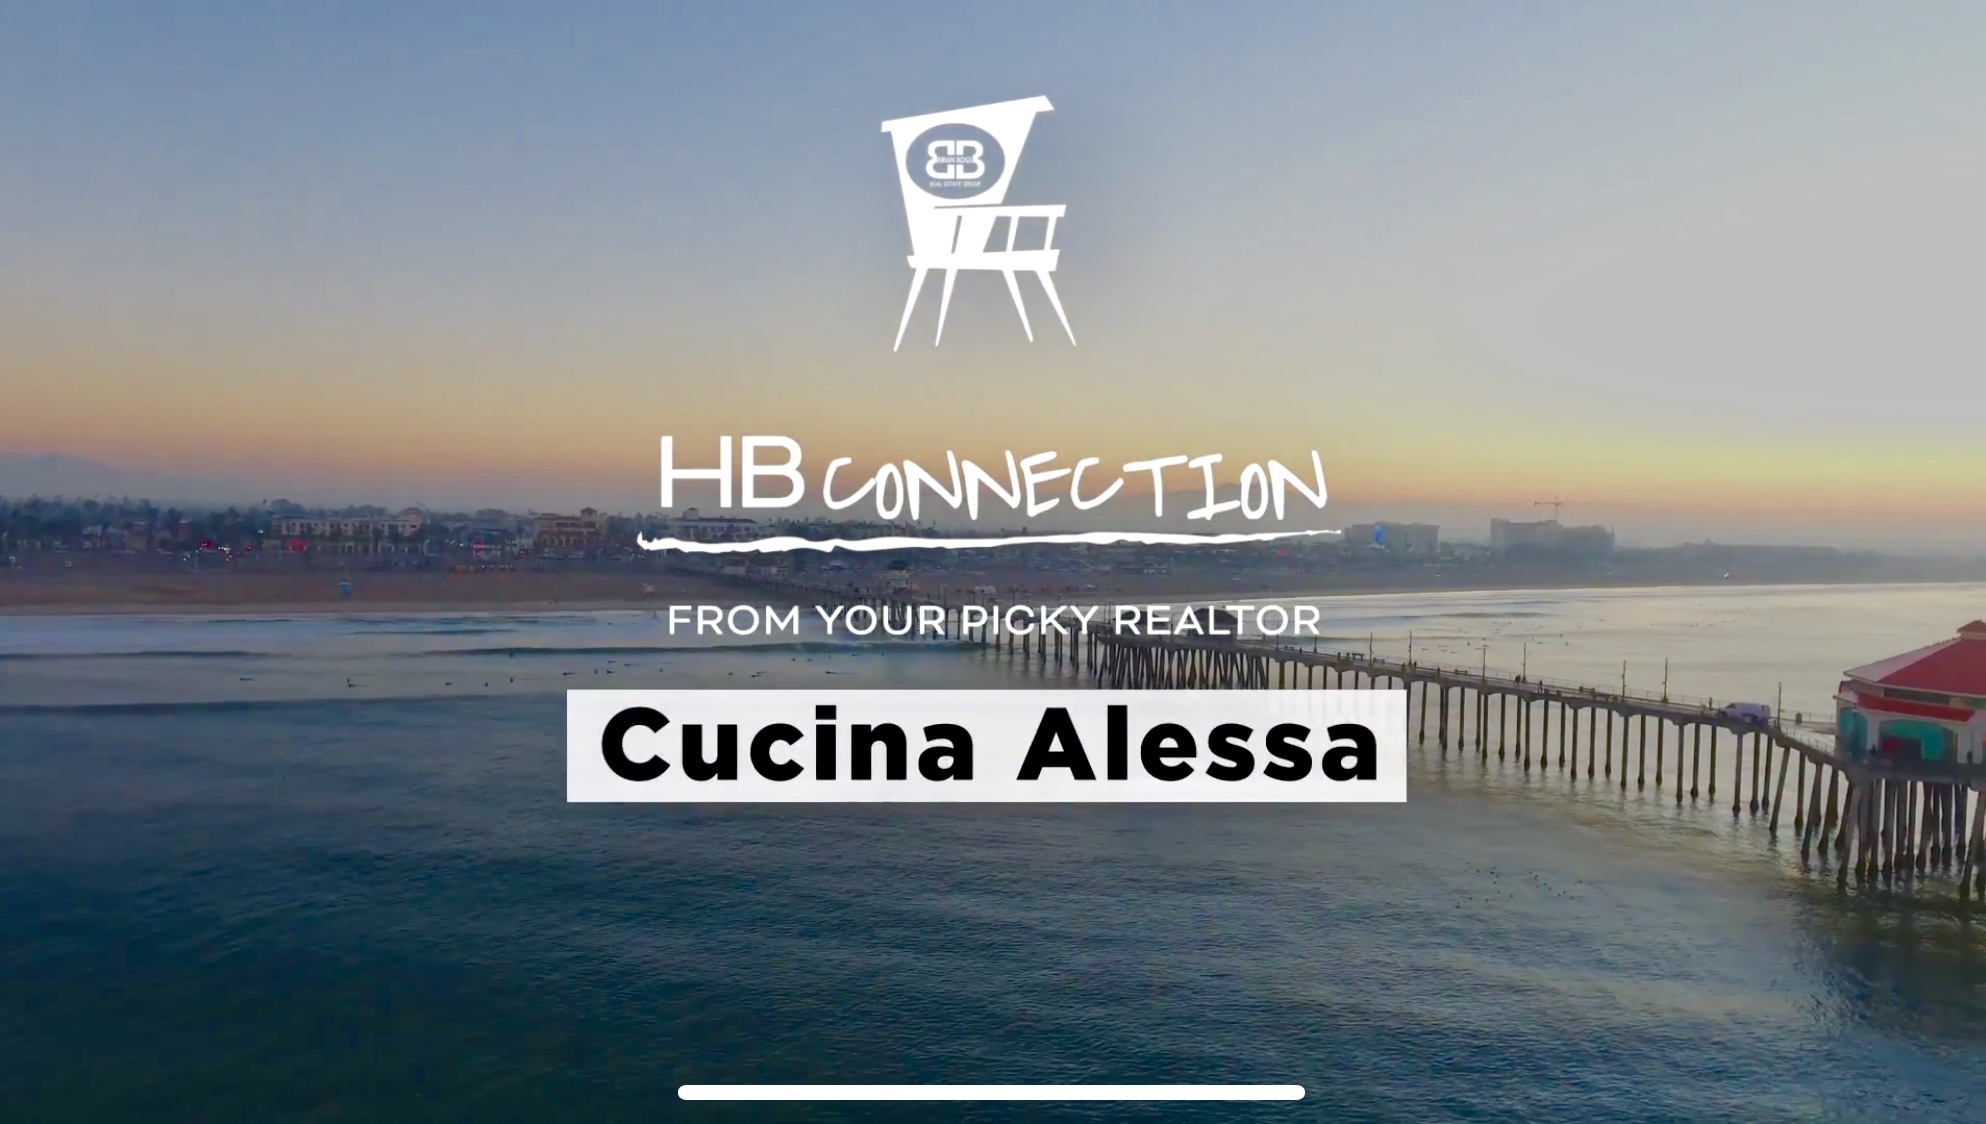 Cucina Alessa Huntington Beach Happy Hour Cucina Alessa Brian Bogs